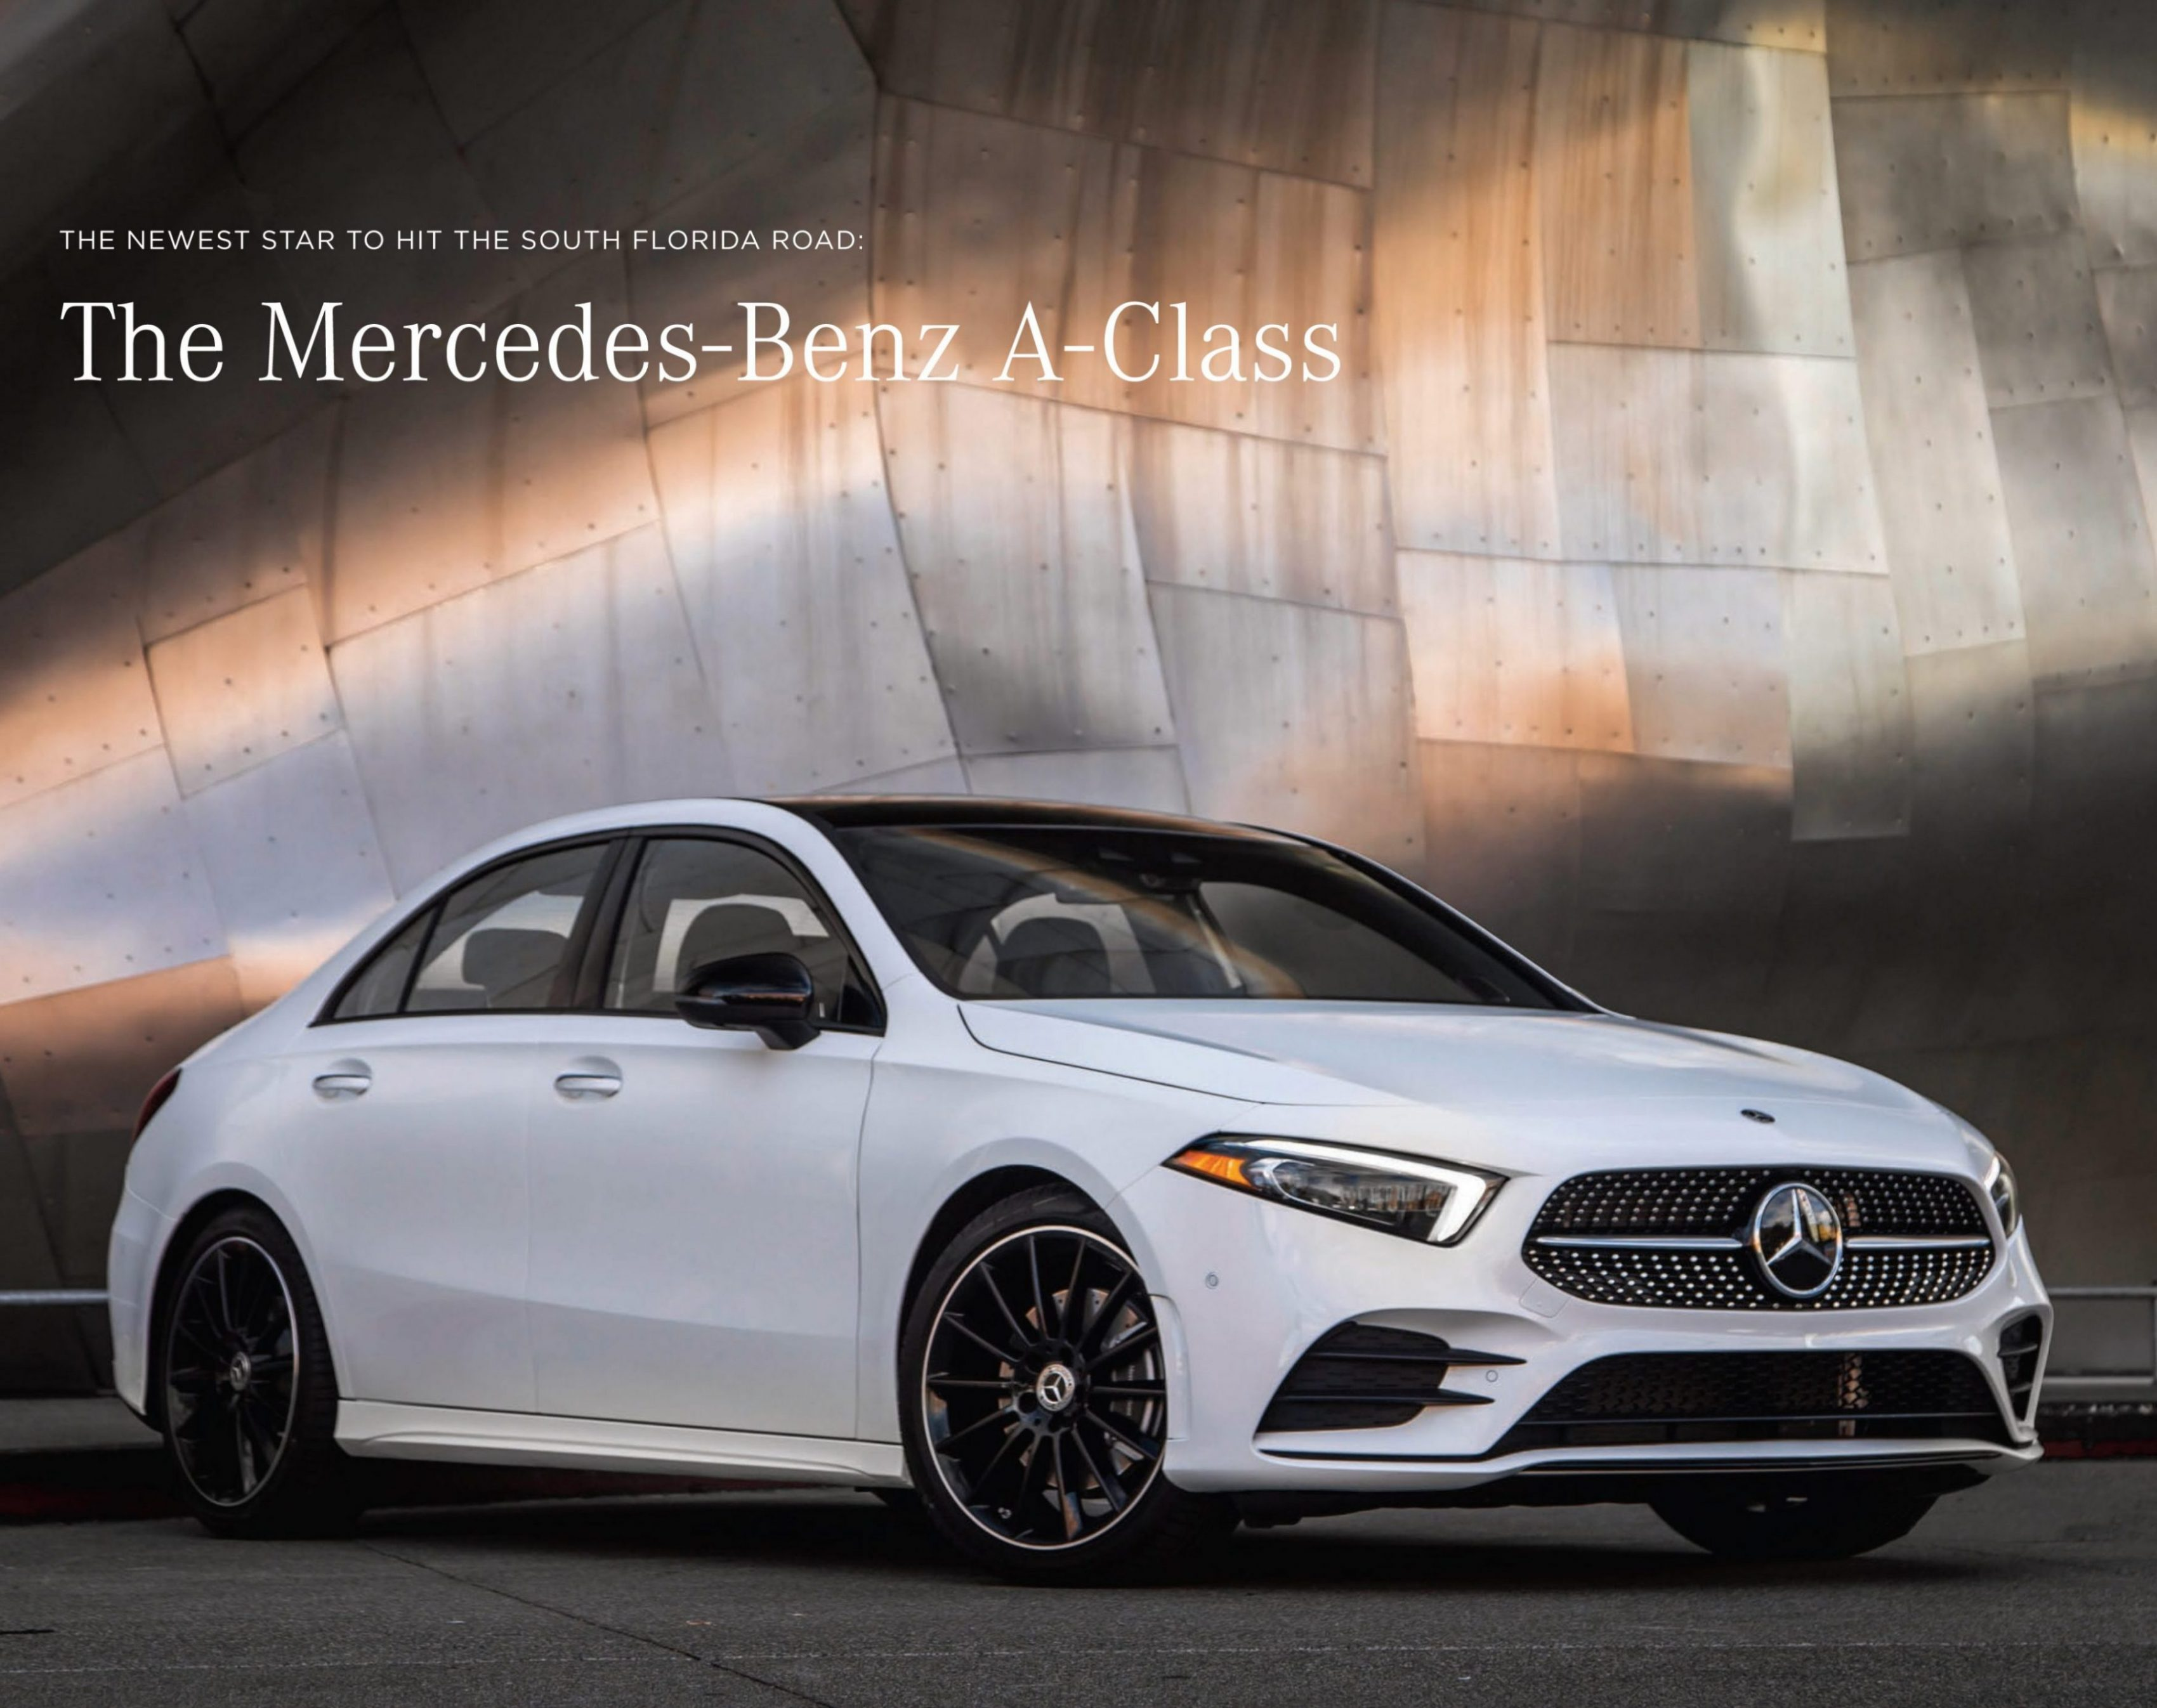 1e71e40096f Mercedes-Benz is excited to bring to the market the all-new 2019  Mercedes-Benz A-Class Sedan.